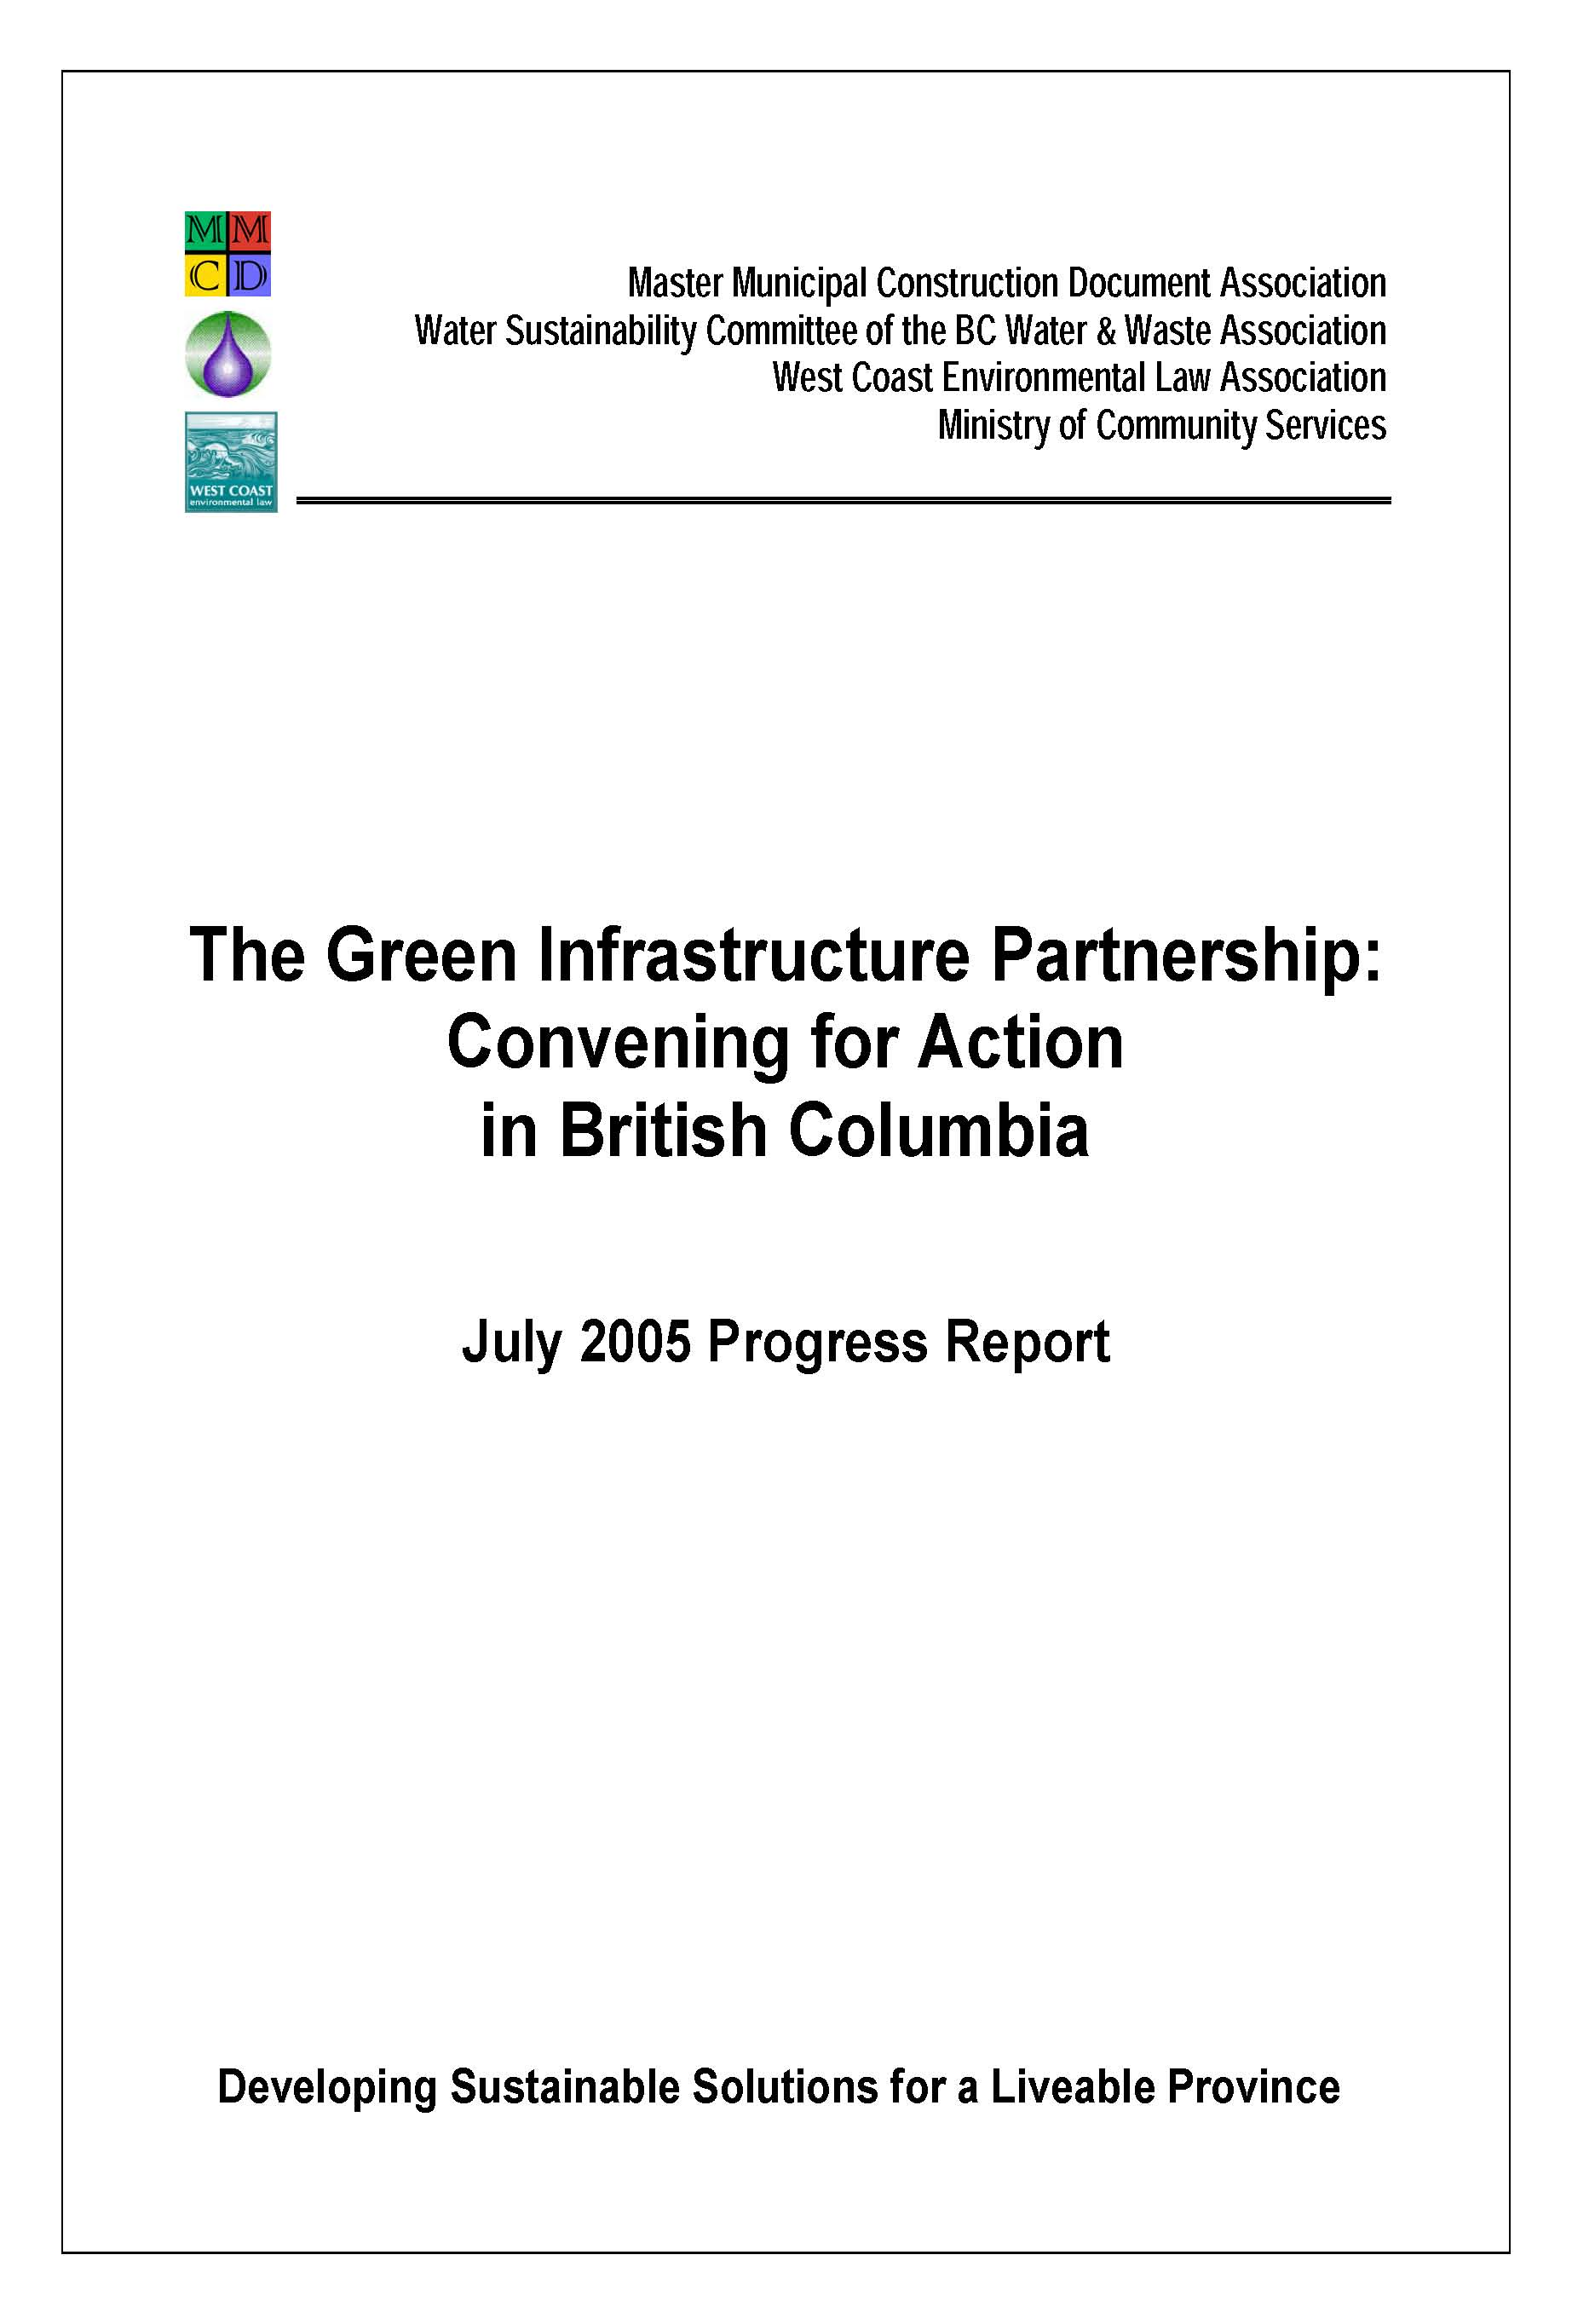 To download the Consultation Report, click on http://www.waterbucket.ca/cfa/sites/wbccfa/documents/media/79.pdf